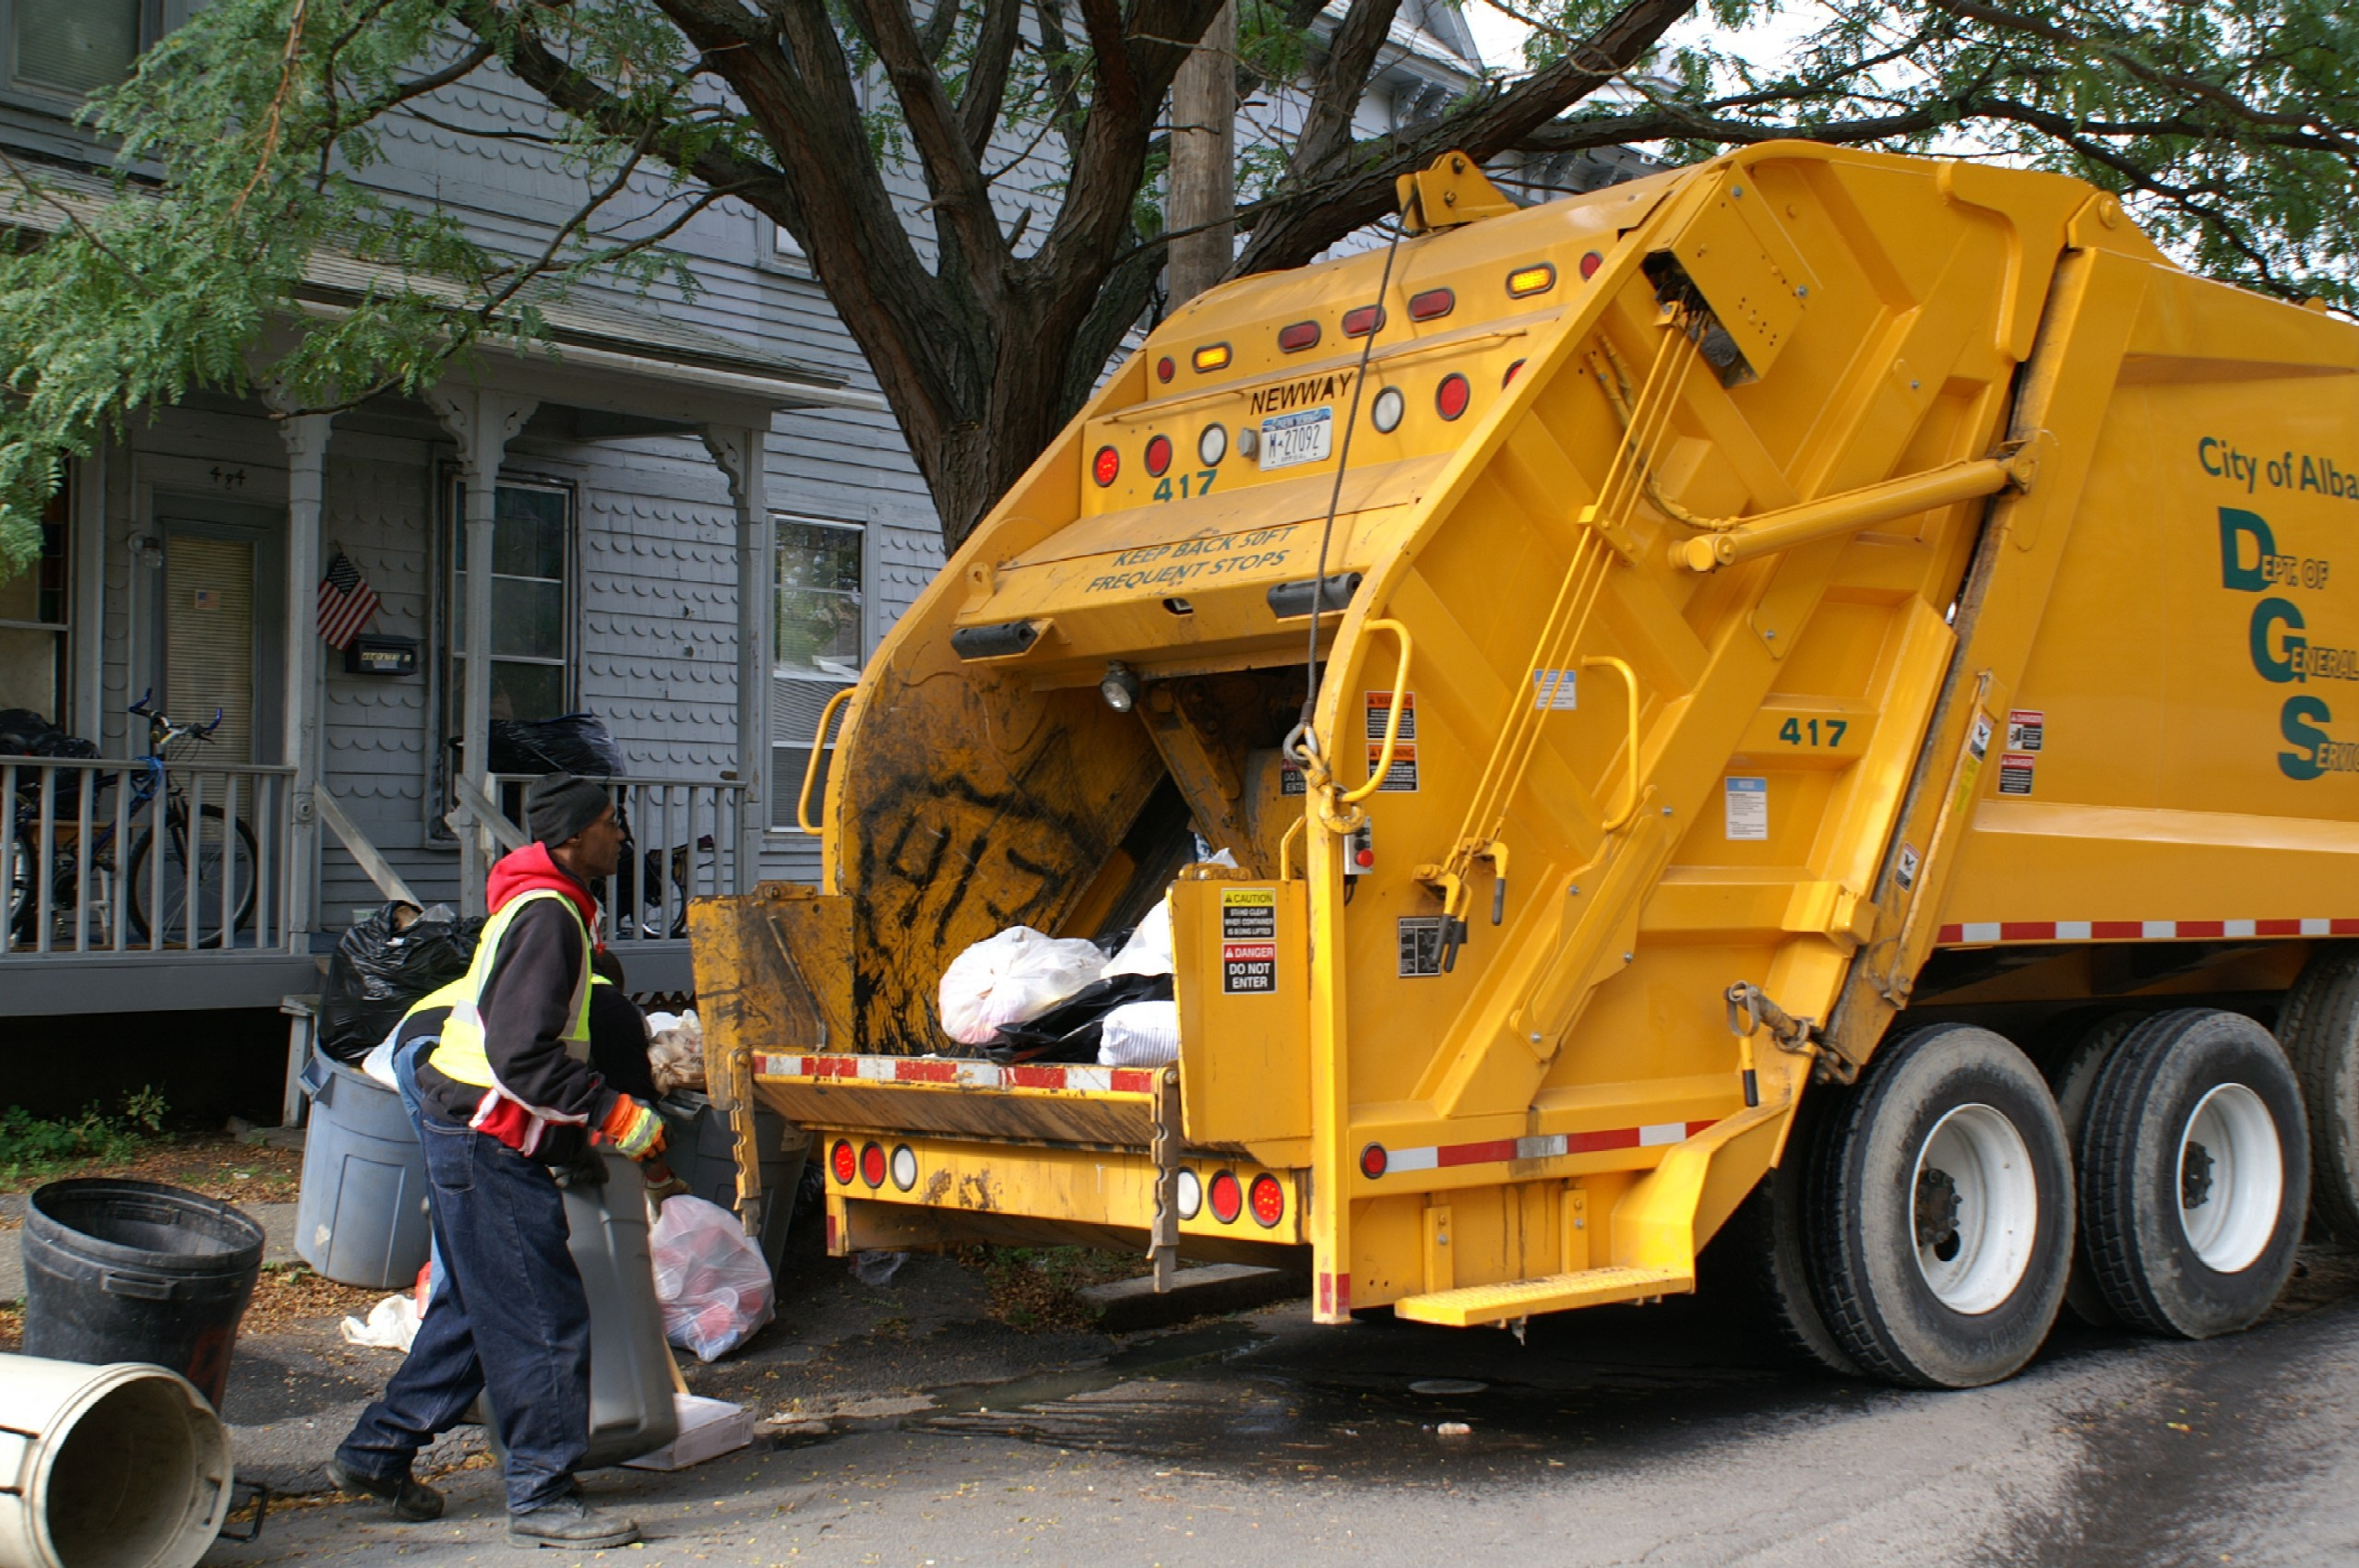 The Garbage Collector